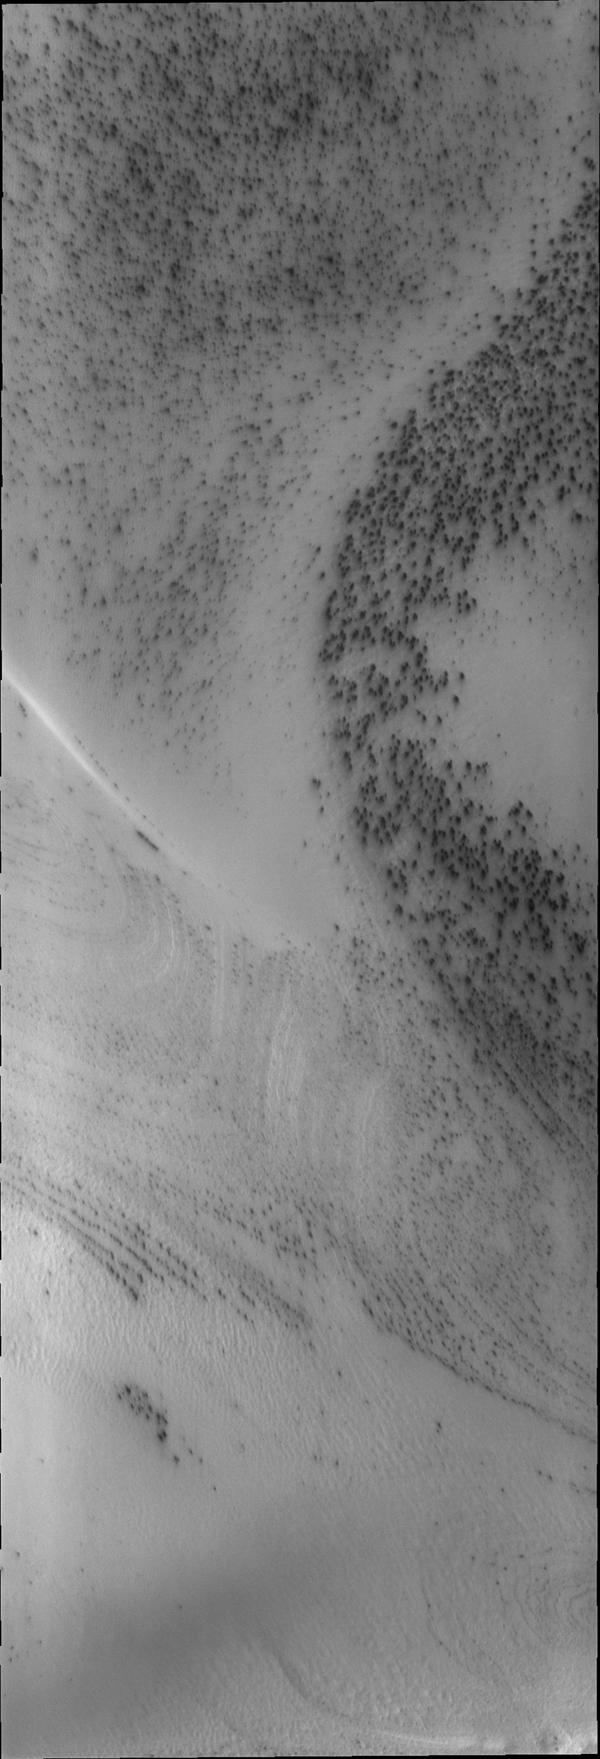 Dark spots appear on the south polar ice cap just after the sun starts to shine in this image captured by NASA's Mars Odyssey.